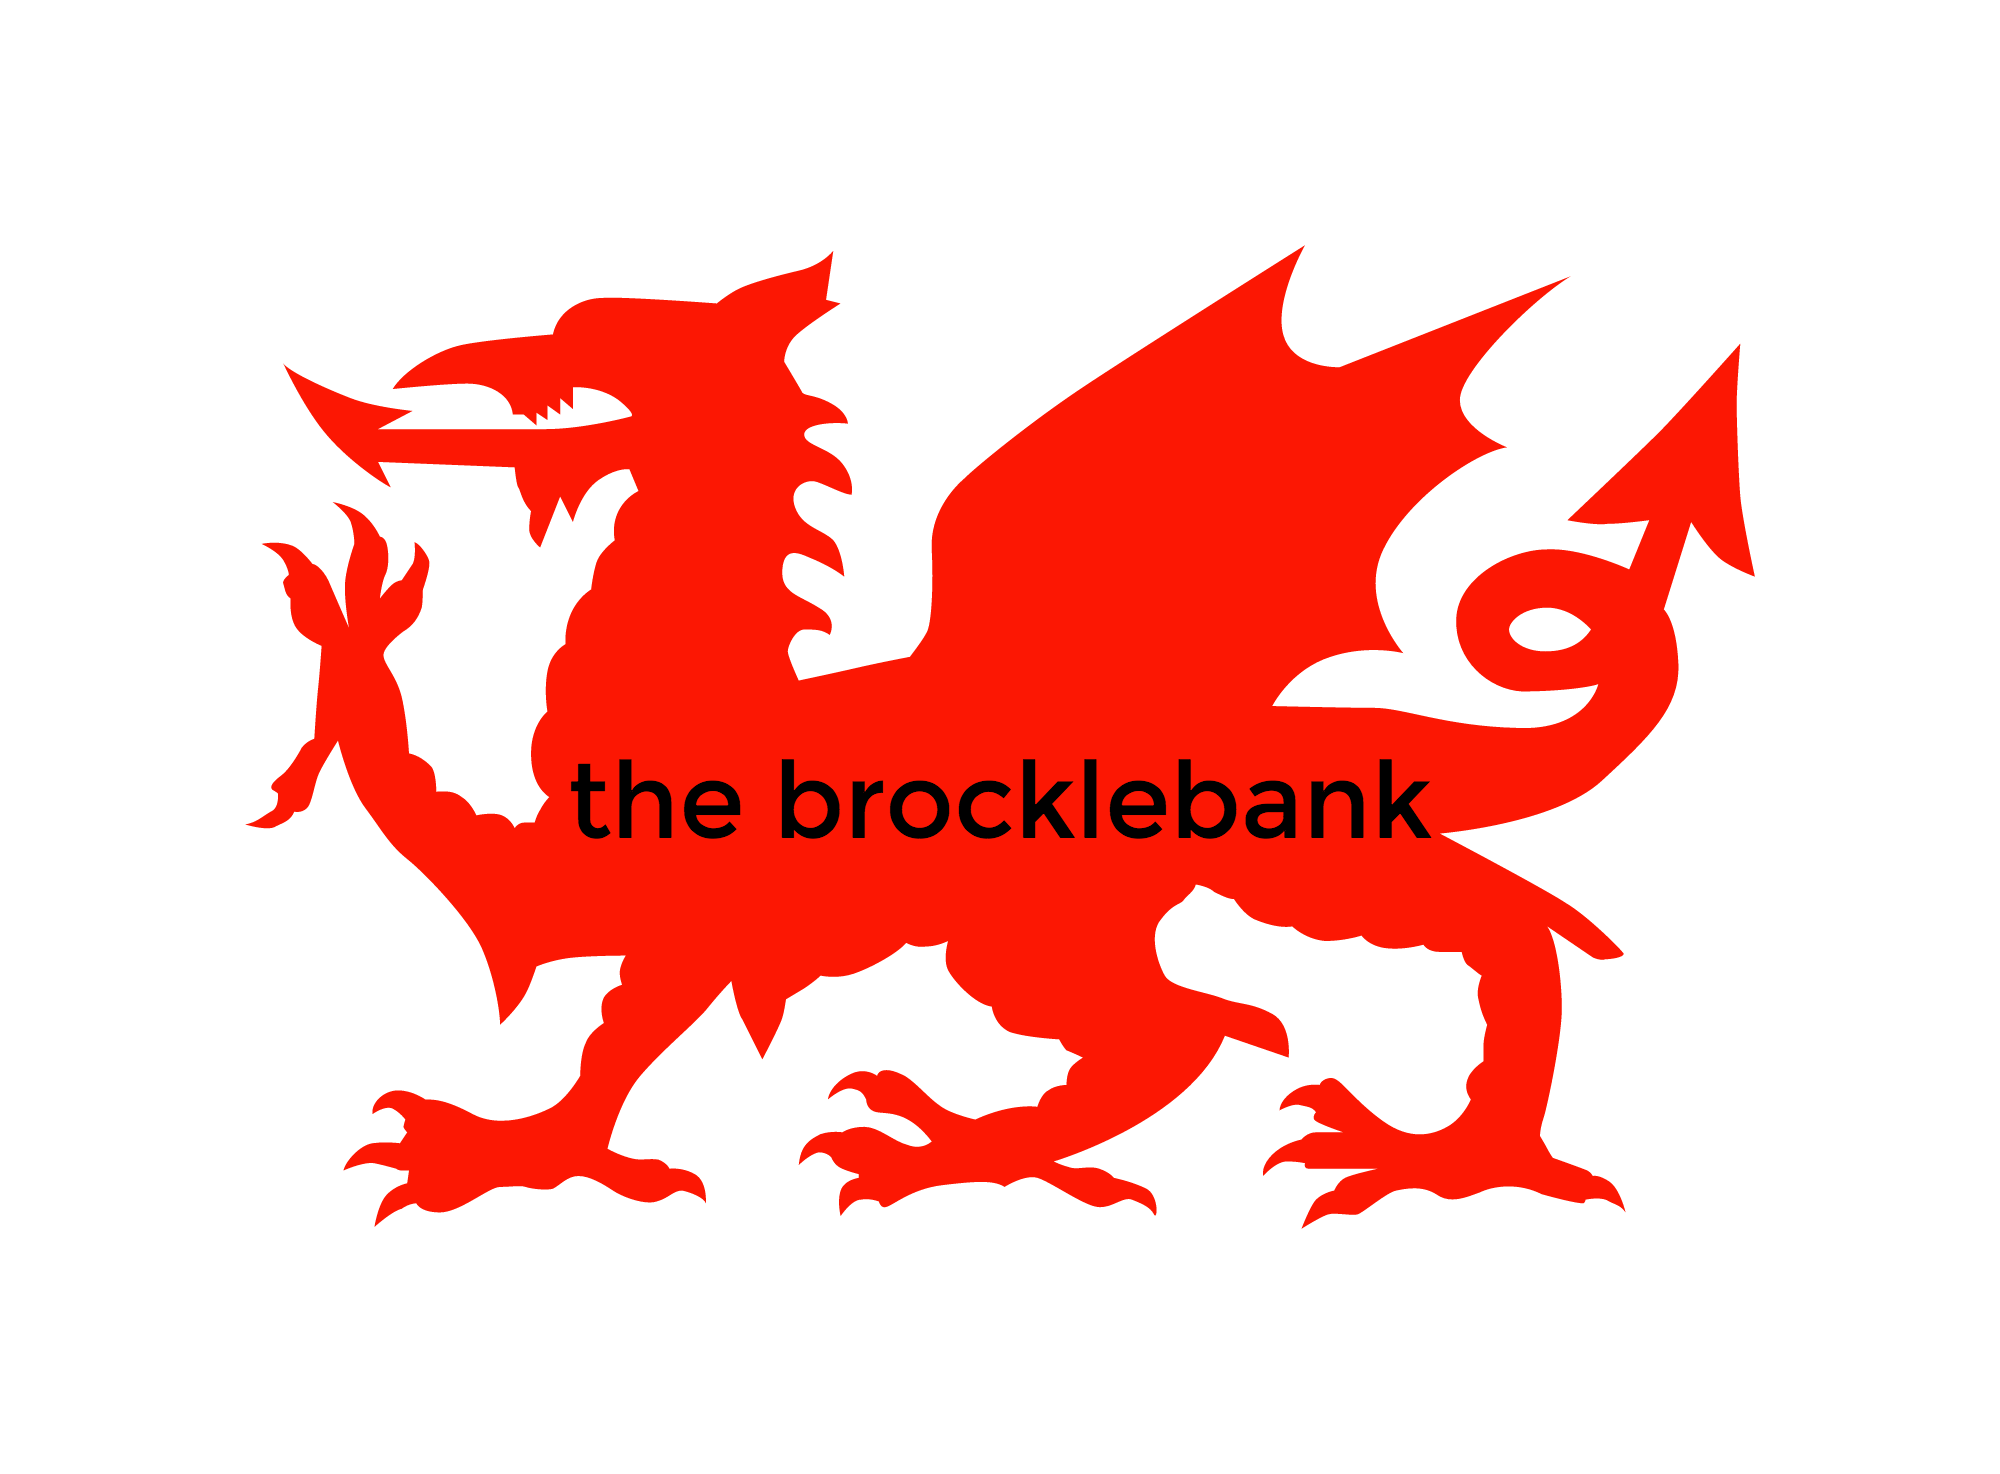 The Brocklebank